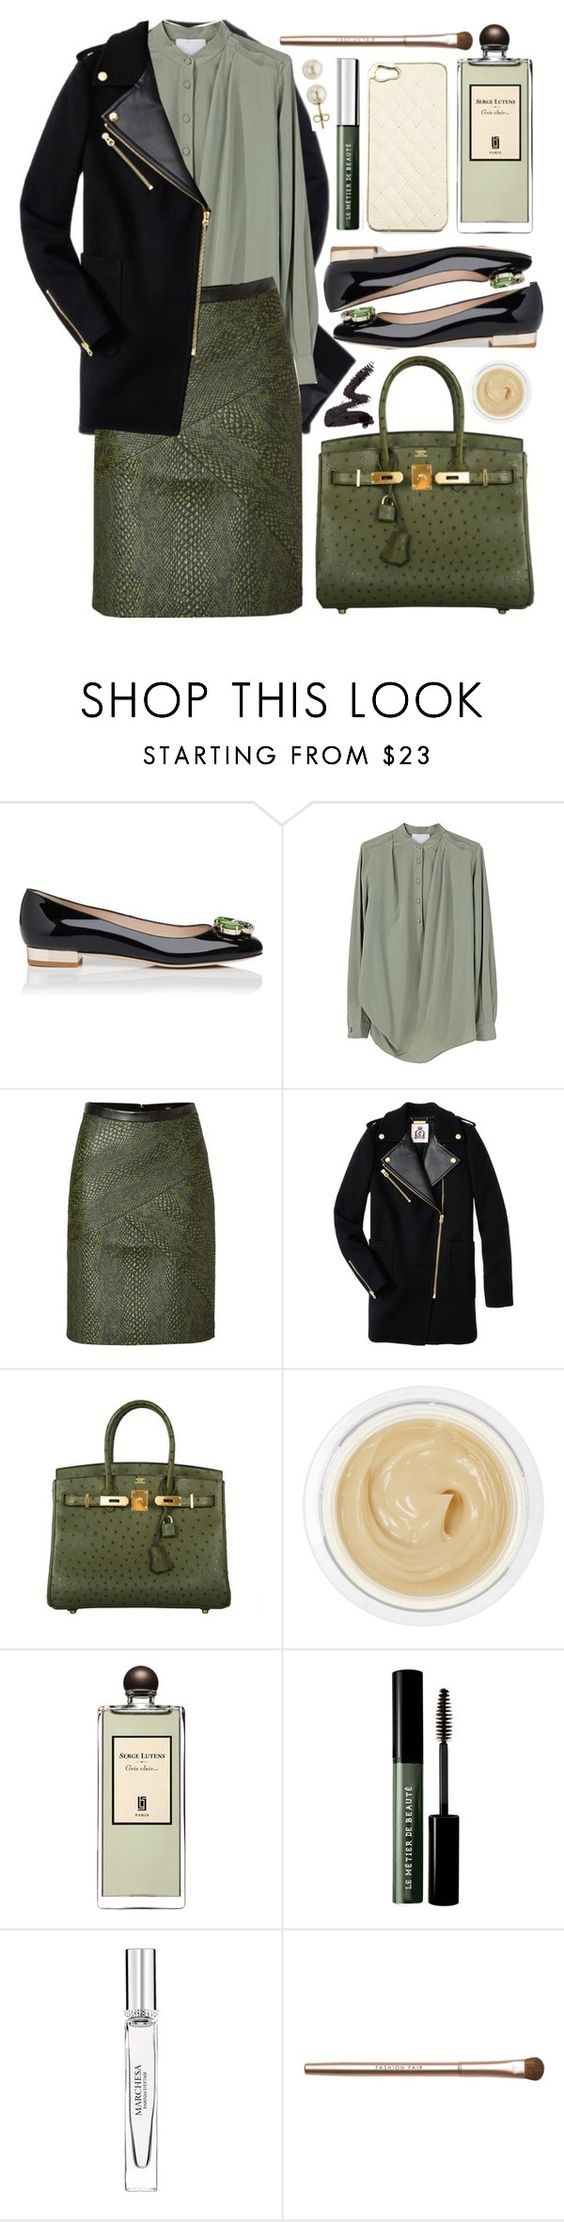 """""""Untitled #323"""" by lagyare ❤ liked on Polyvore featuring L.K.Bennett, Superdry, 3.1 Phillip Lim, TIBI, Juicy Couture, Hermès, Chantecaille, MAKE UP FOR EVER, Serge Lutens and Le Métier de Beauté"""